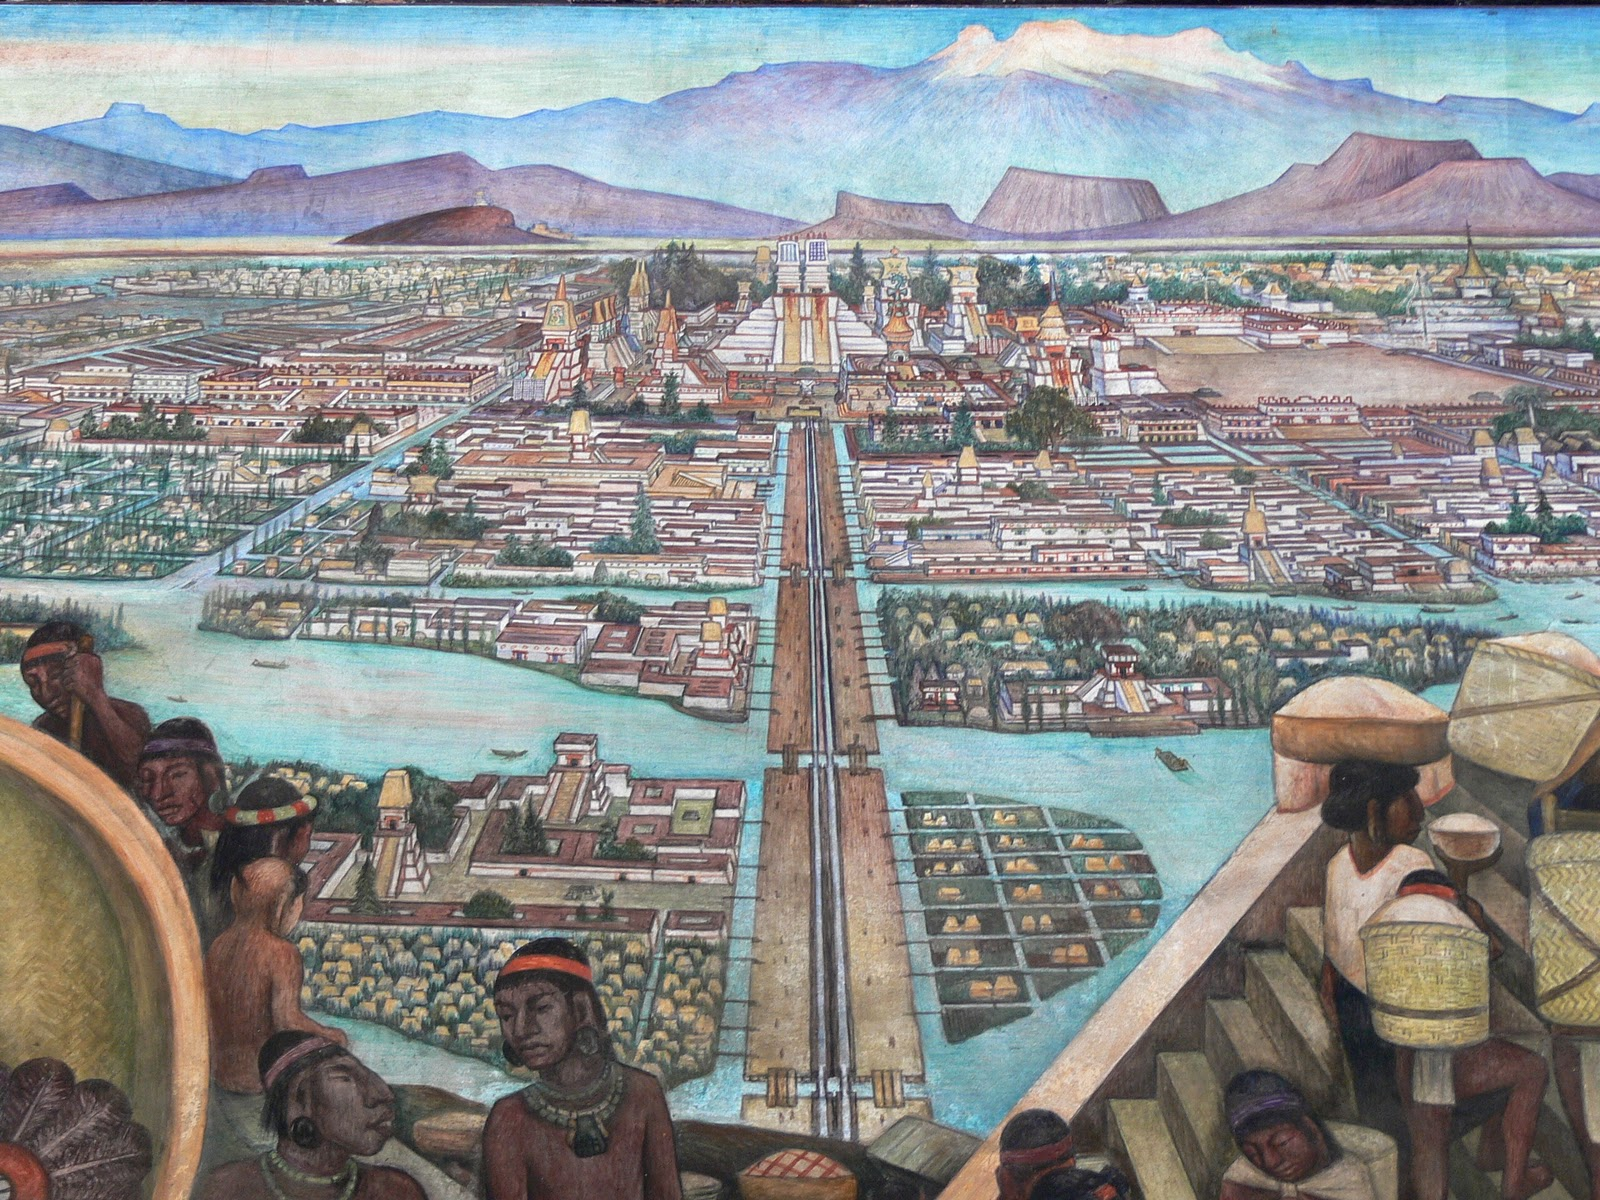 Bcr year 8 history images of tenochtitlan for Diego rivera tenochtitlan mural